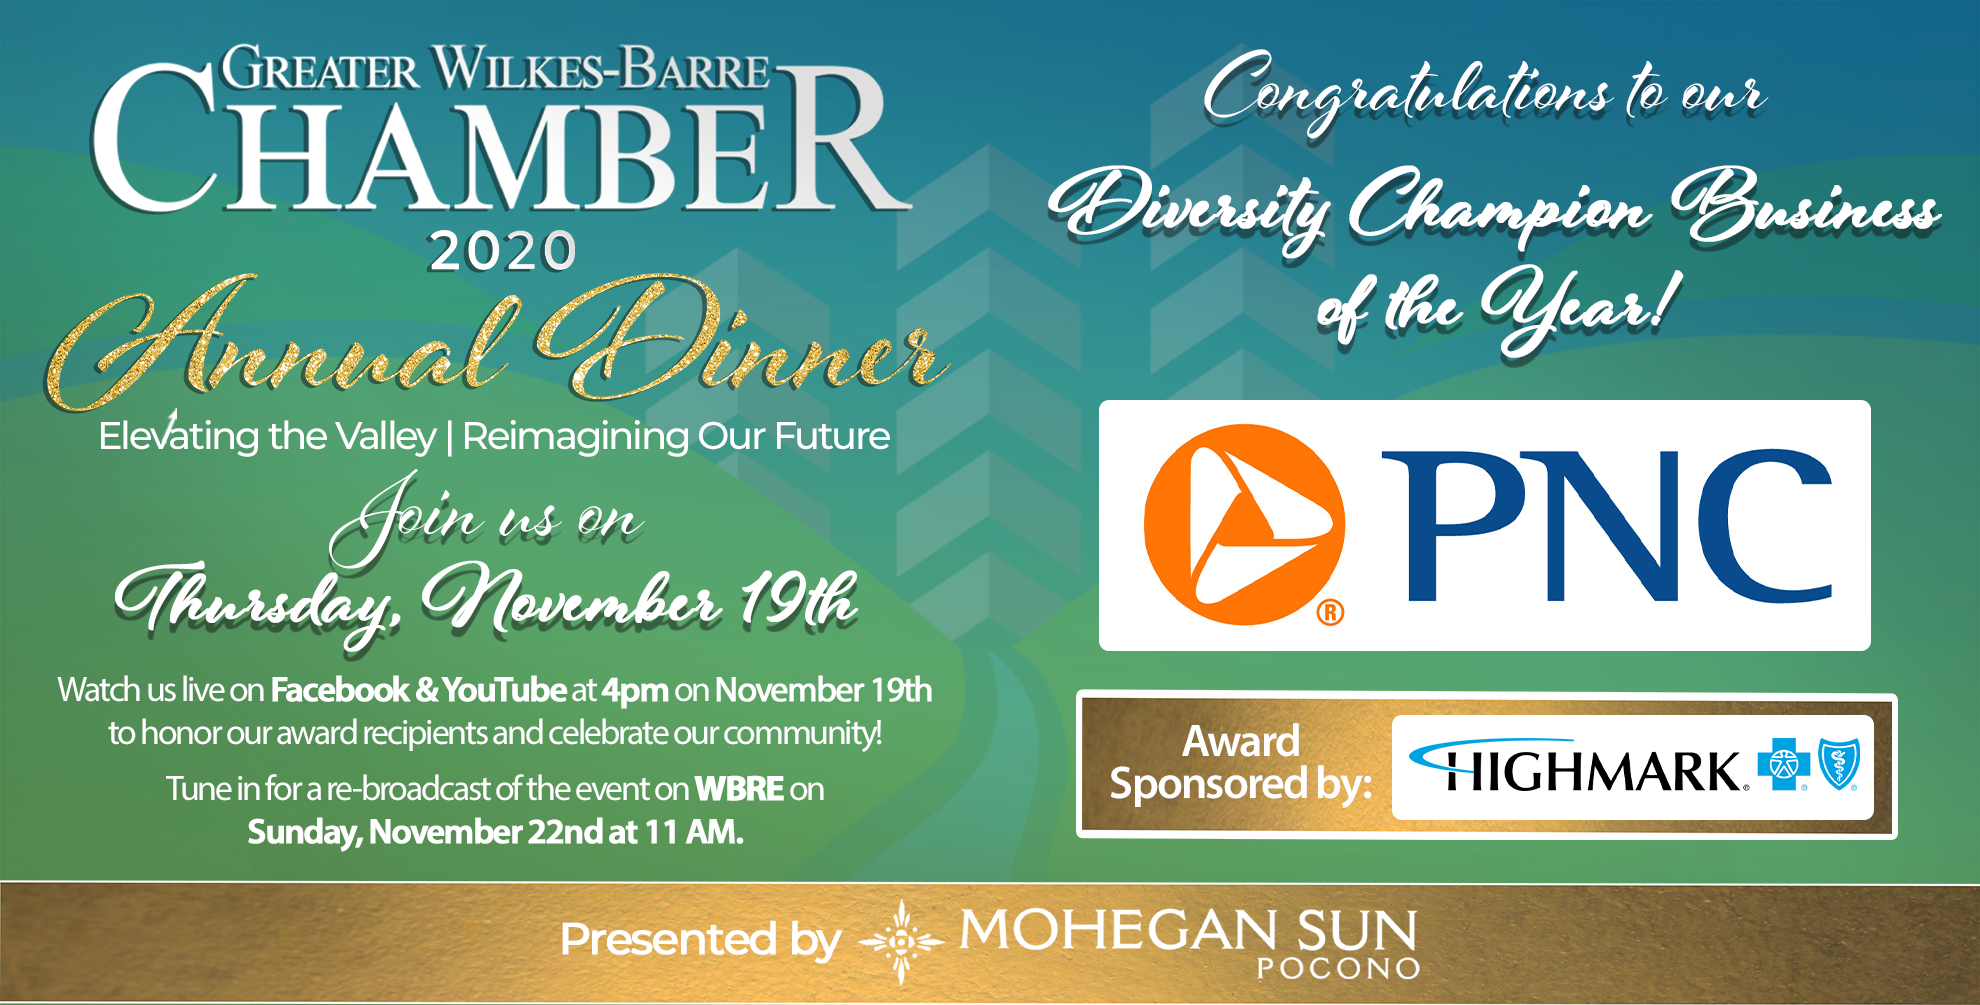 Image for Meet Our 2020 Diversity Champion Business of the Year: PNC Bank